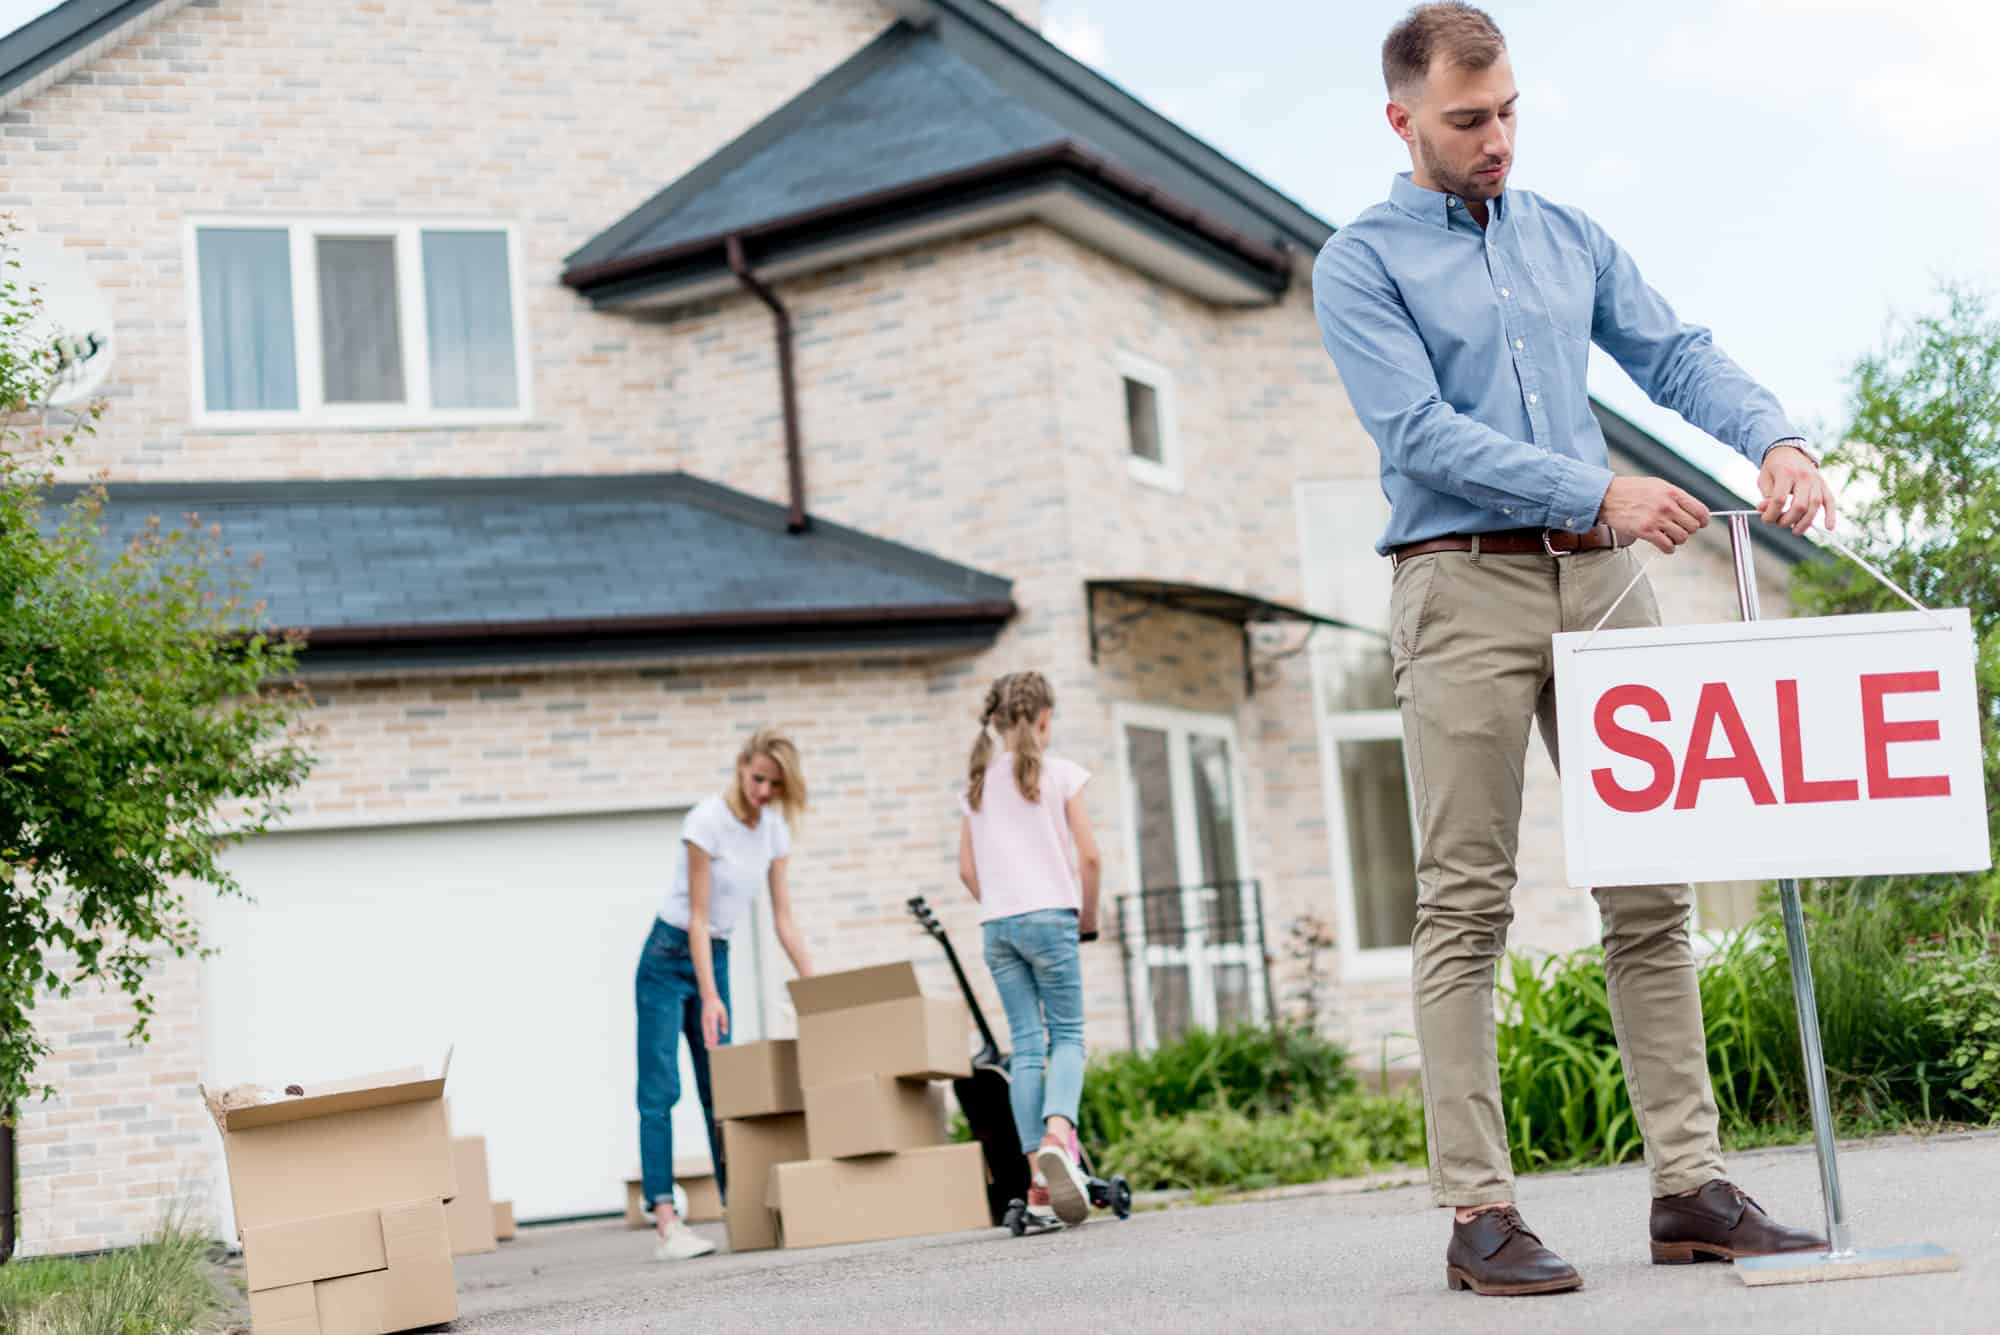 List your home for sale with Stacy Snively, ZVilleHomes.com